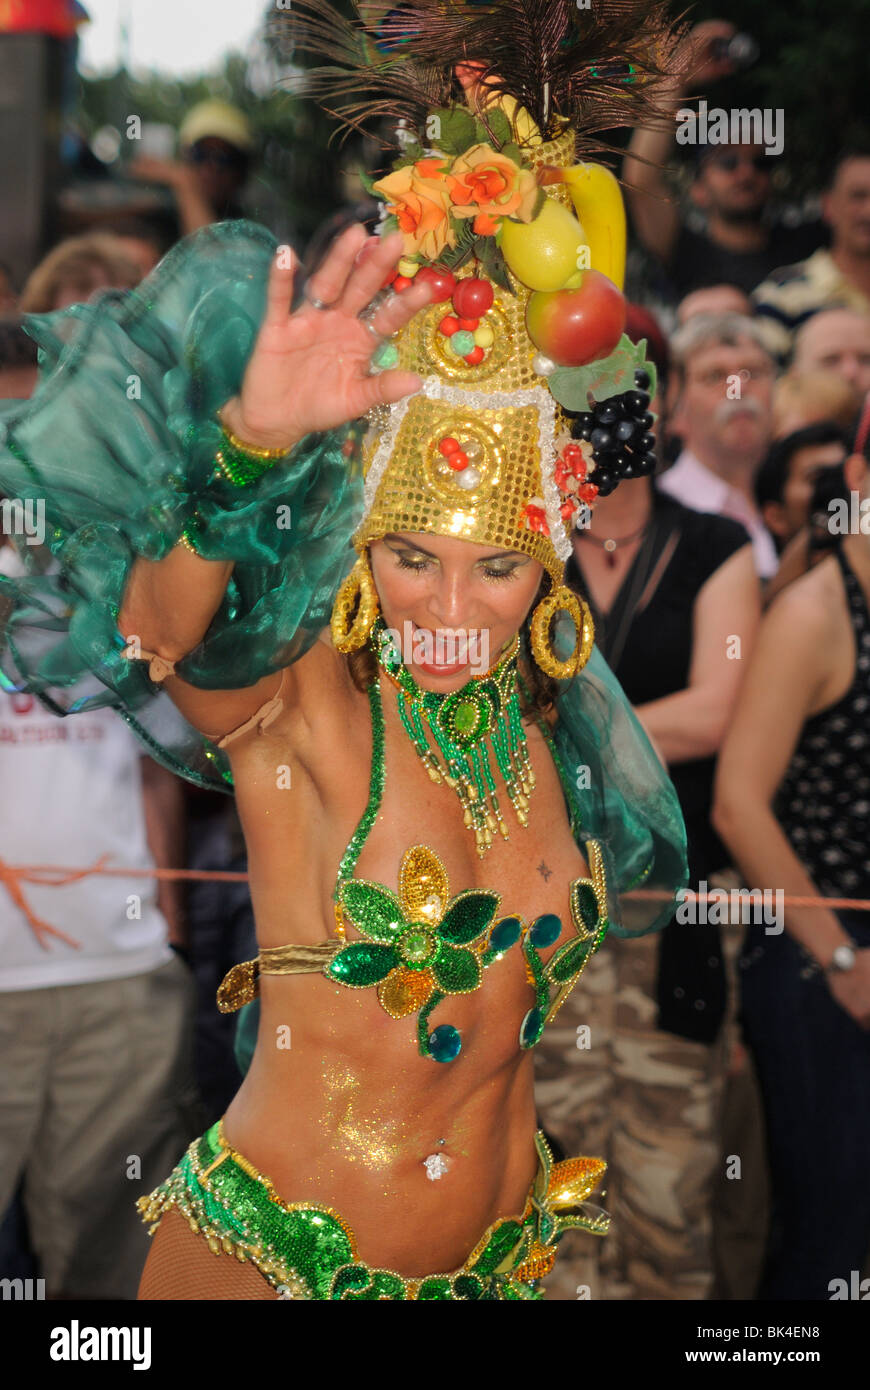 Brazilian Samba dancer at the Karneval der Kulturen, Carnival of Cultures, Berlin, Kreuzberg district, Germany, - Stock Image